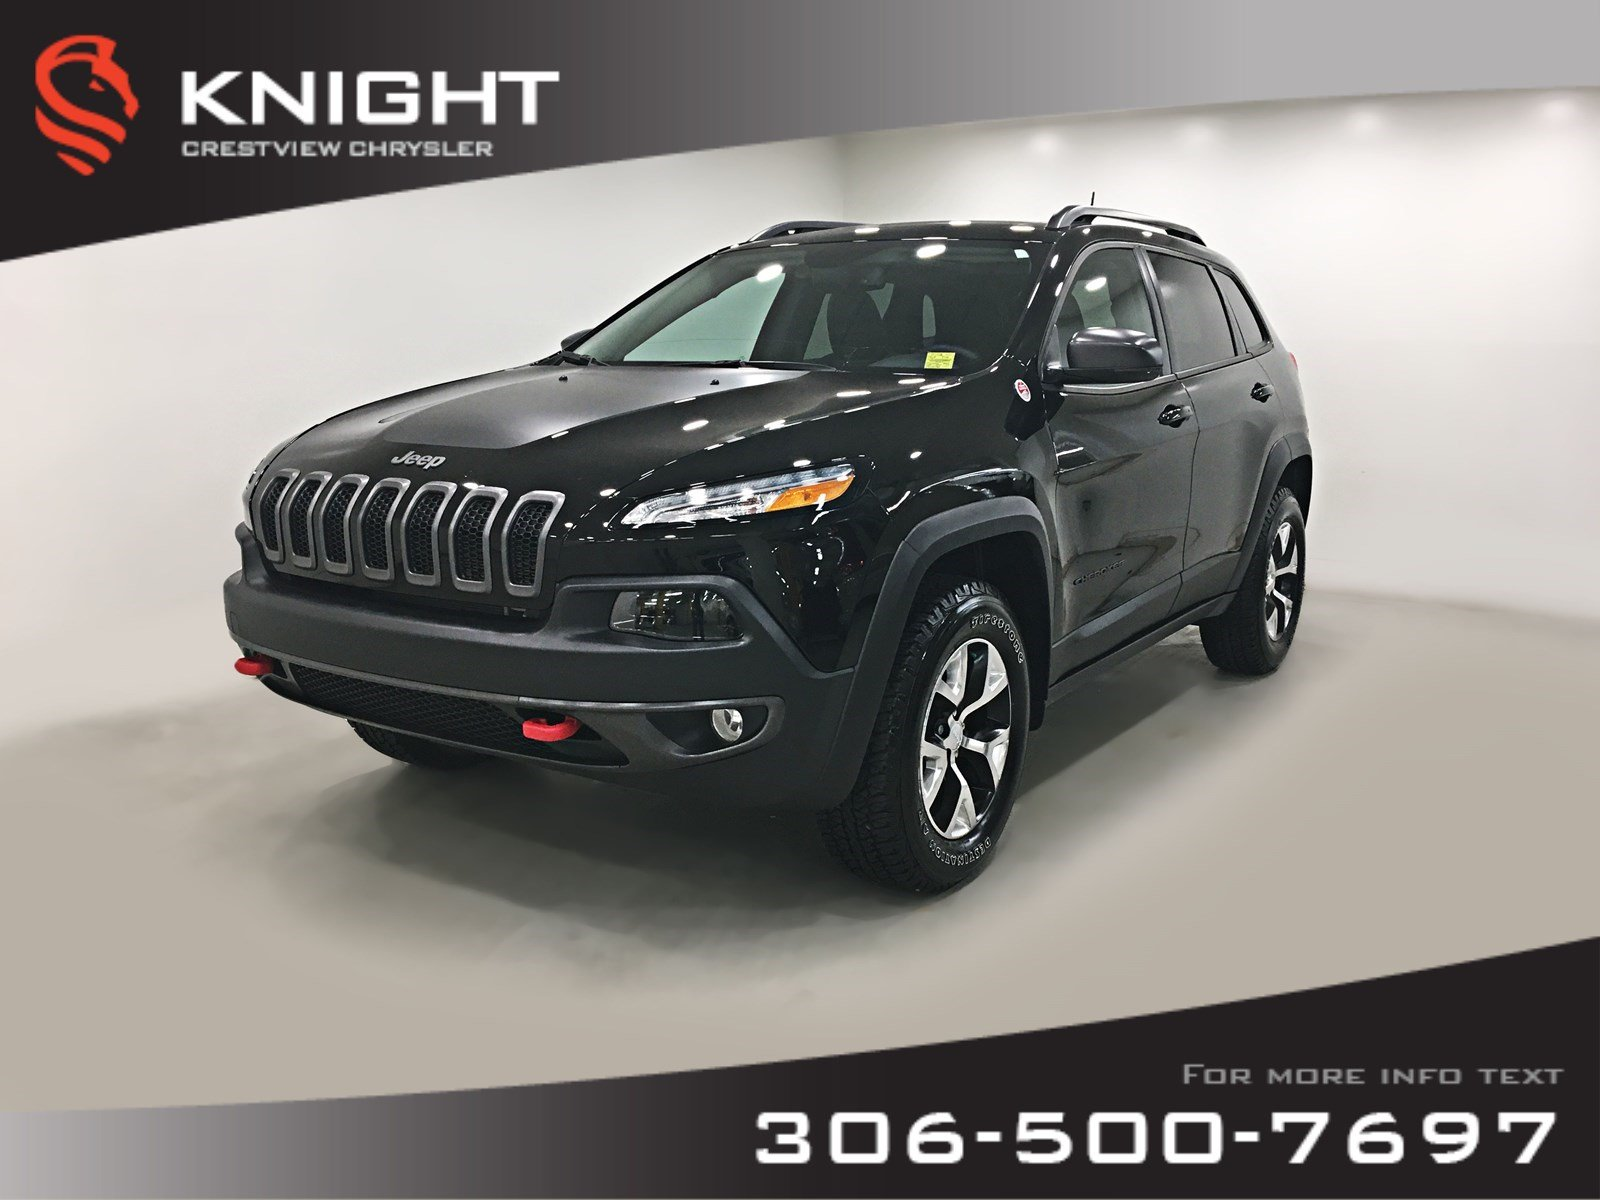 2018 Jeep Cherokee Trailhawk Leather Plus 4x4 | Sunroof | Navigation Trailhawk Leather Plus 4x4